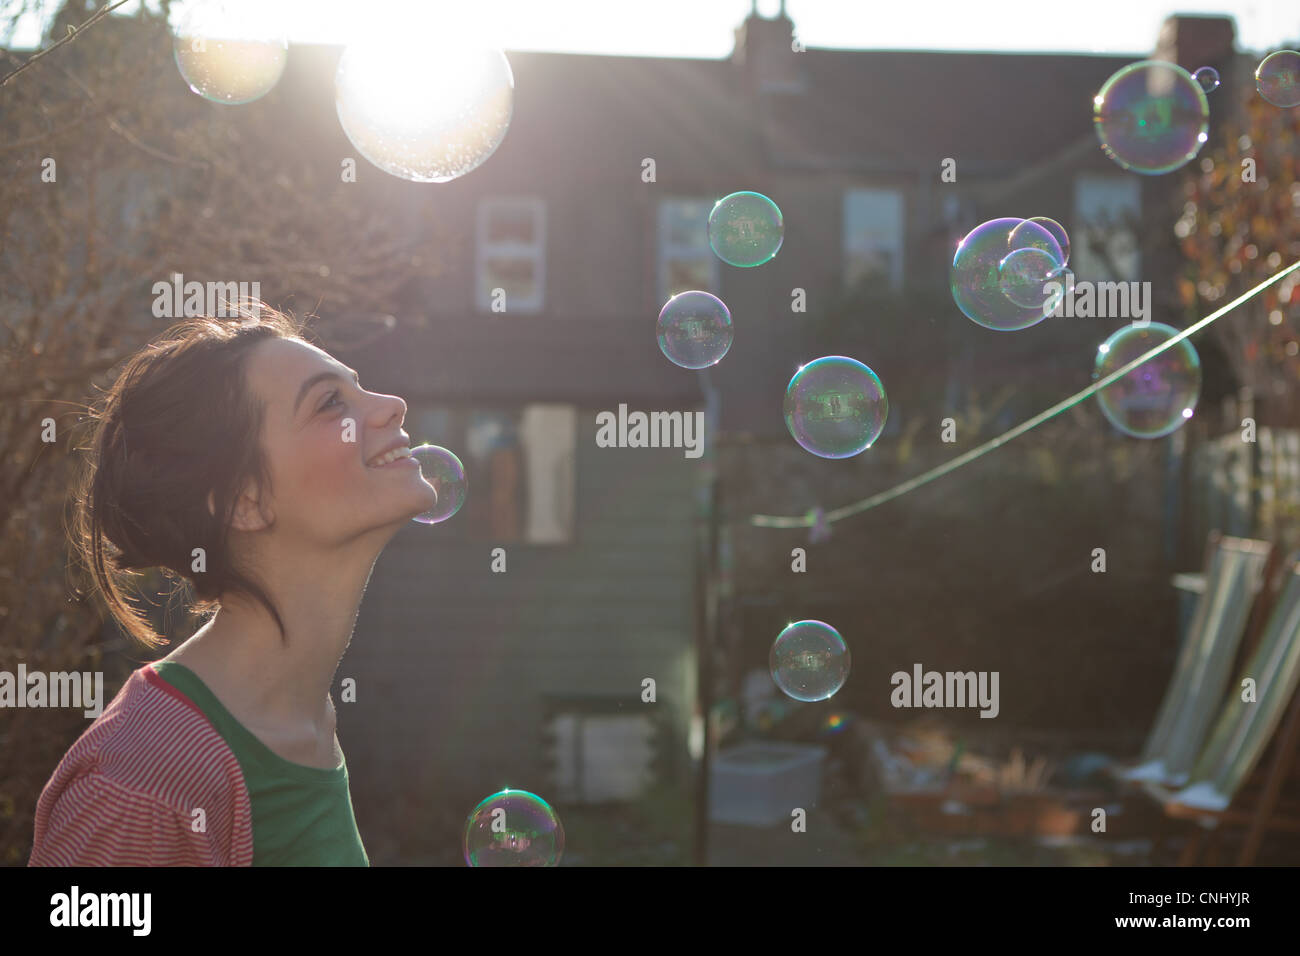 Young woman outdoors with bubbles floating in air Photo Stock